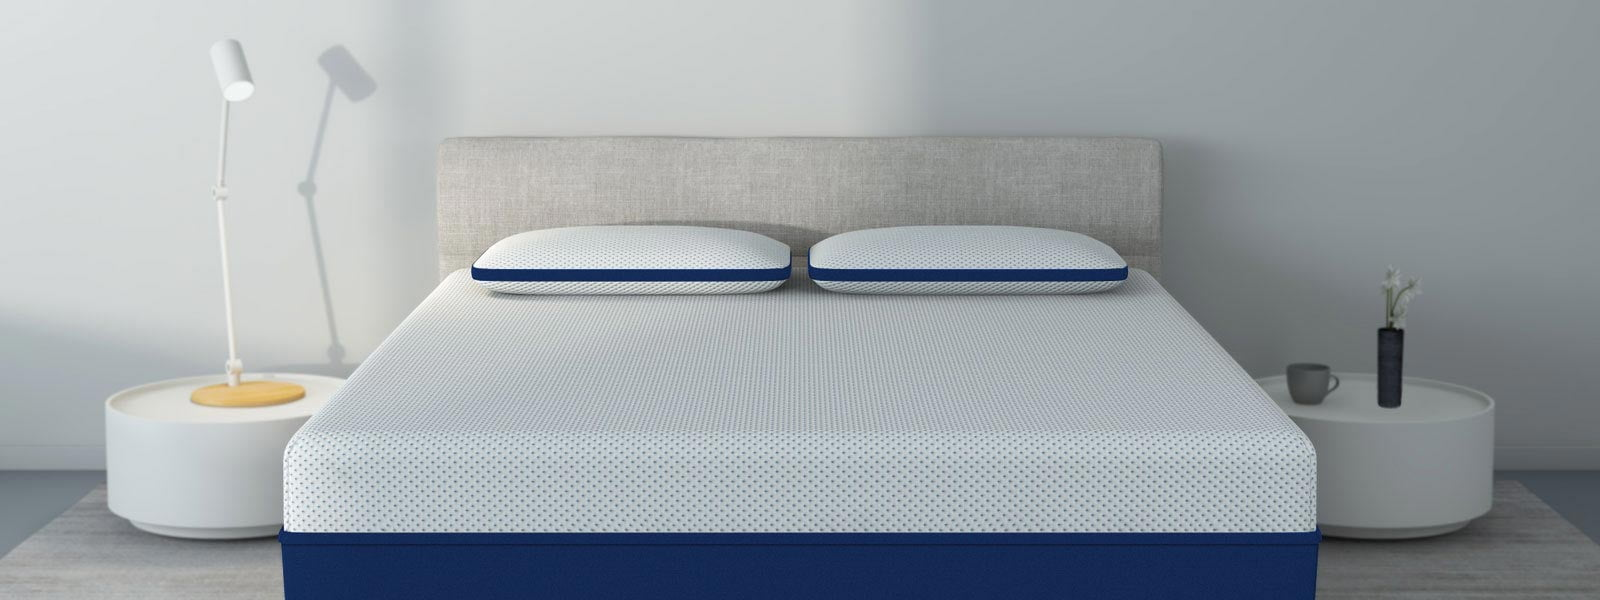 Amerisleep has some of the best mattress reviews in the industry